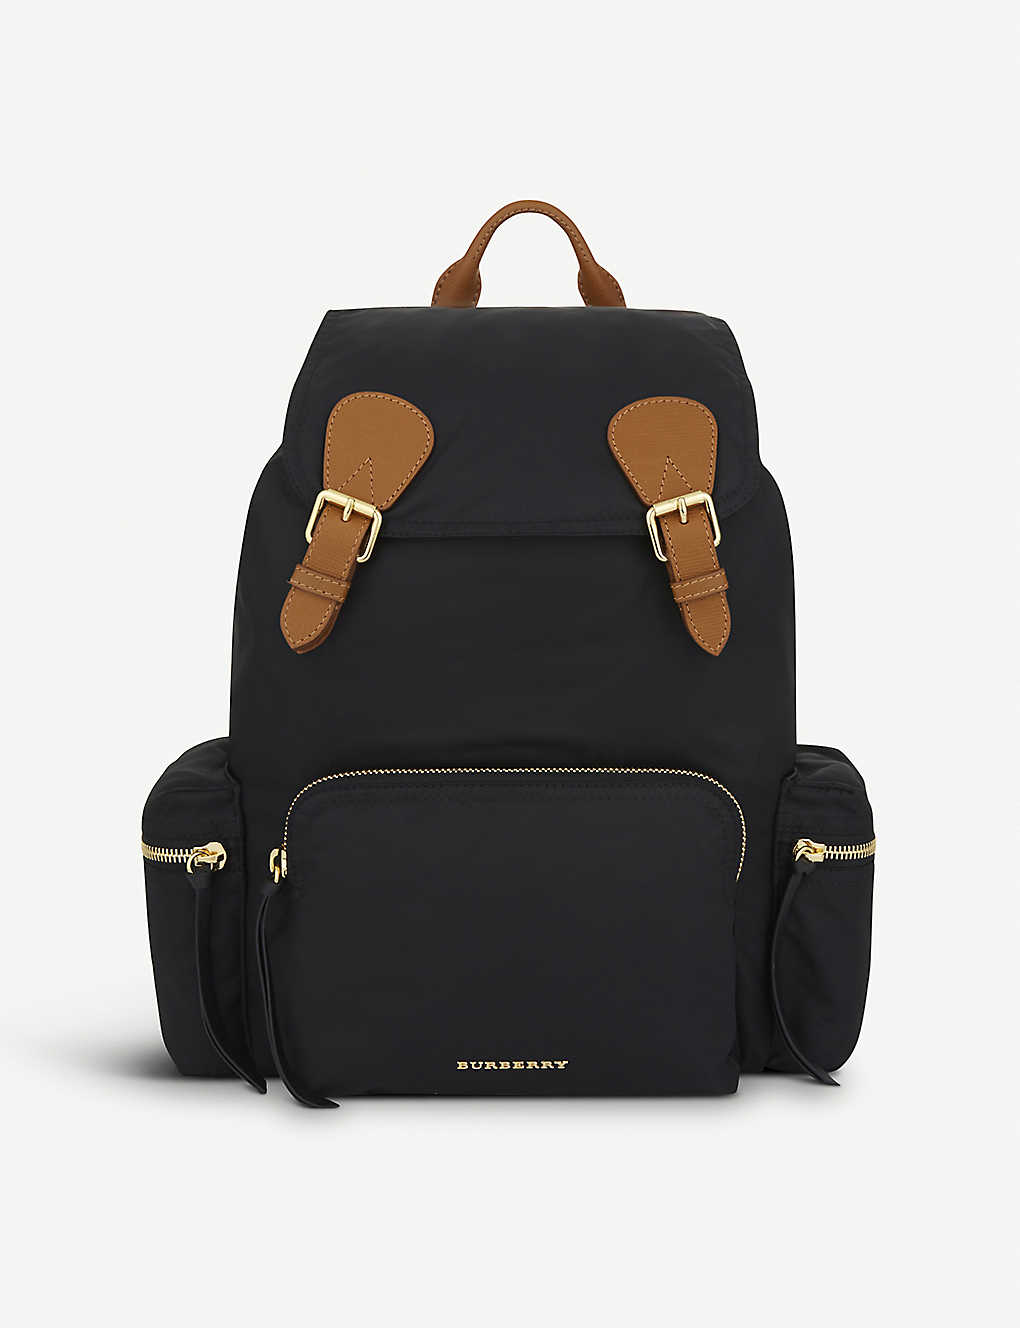 c695a0ebe0c7b BURBERRY - The Large Rucksack